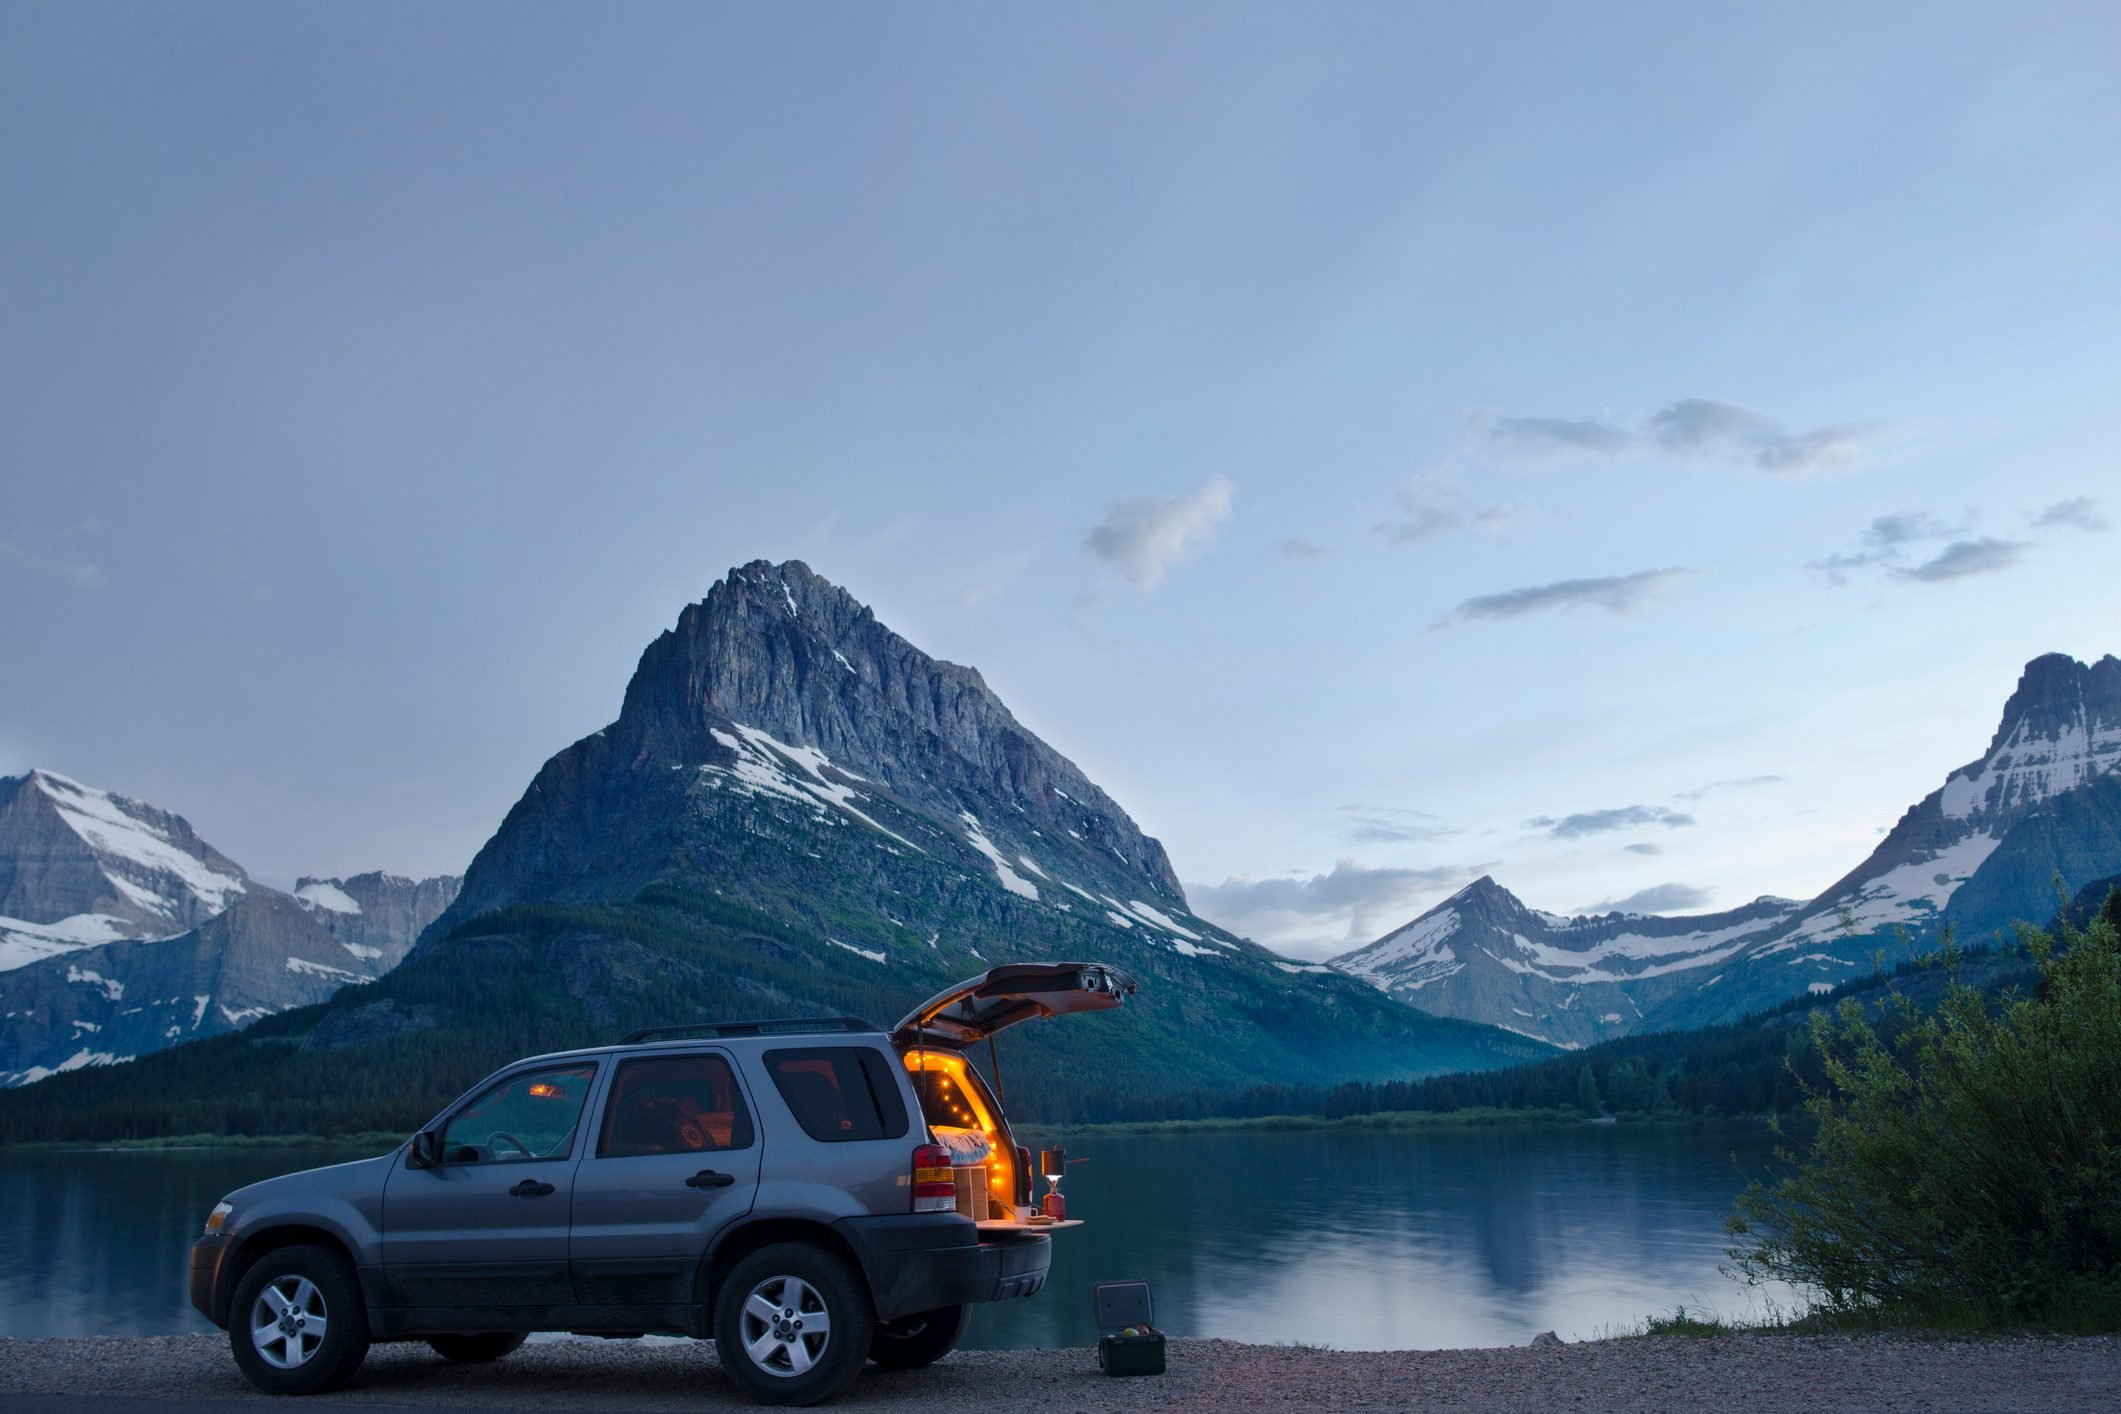 Sports utility vehicle parked on shore of Swiftcurrent lake against Mt. Grinnell